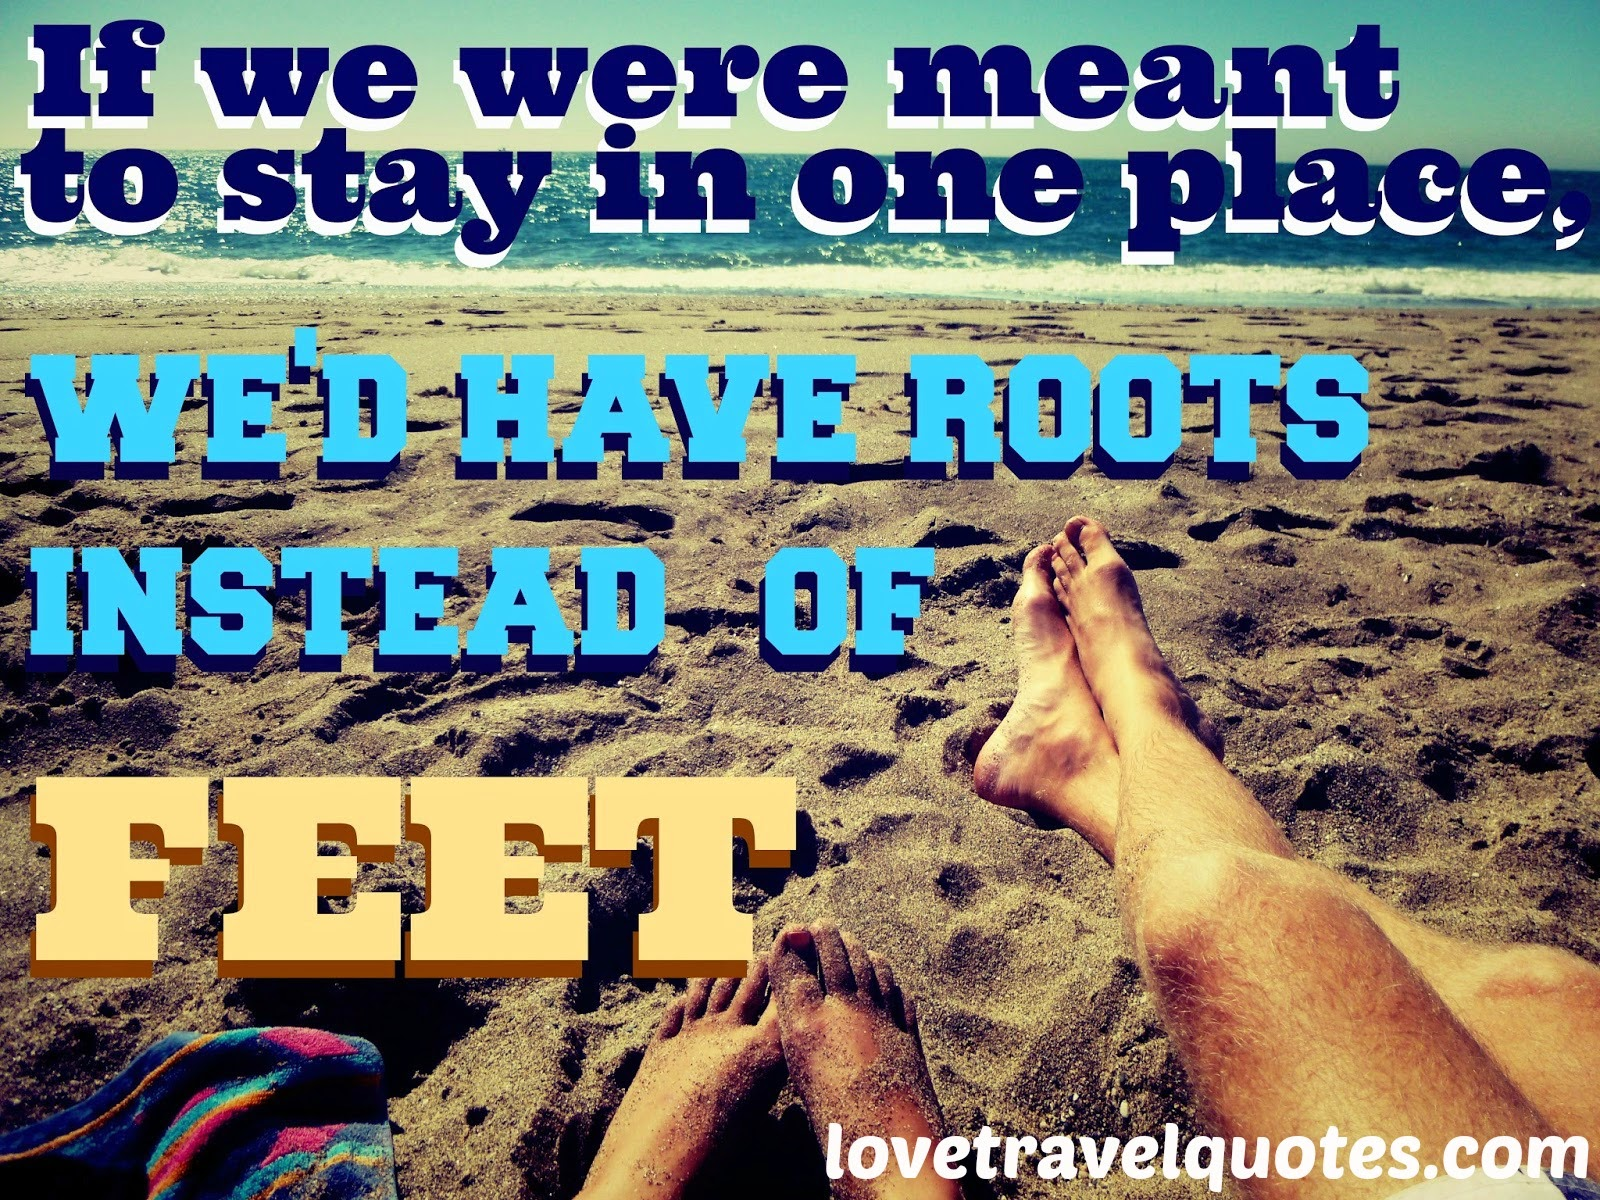 If we were meant to stay in one place, we'd have roots instead of feet